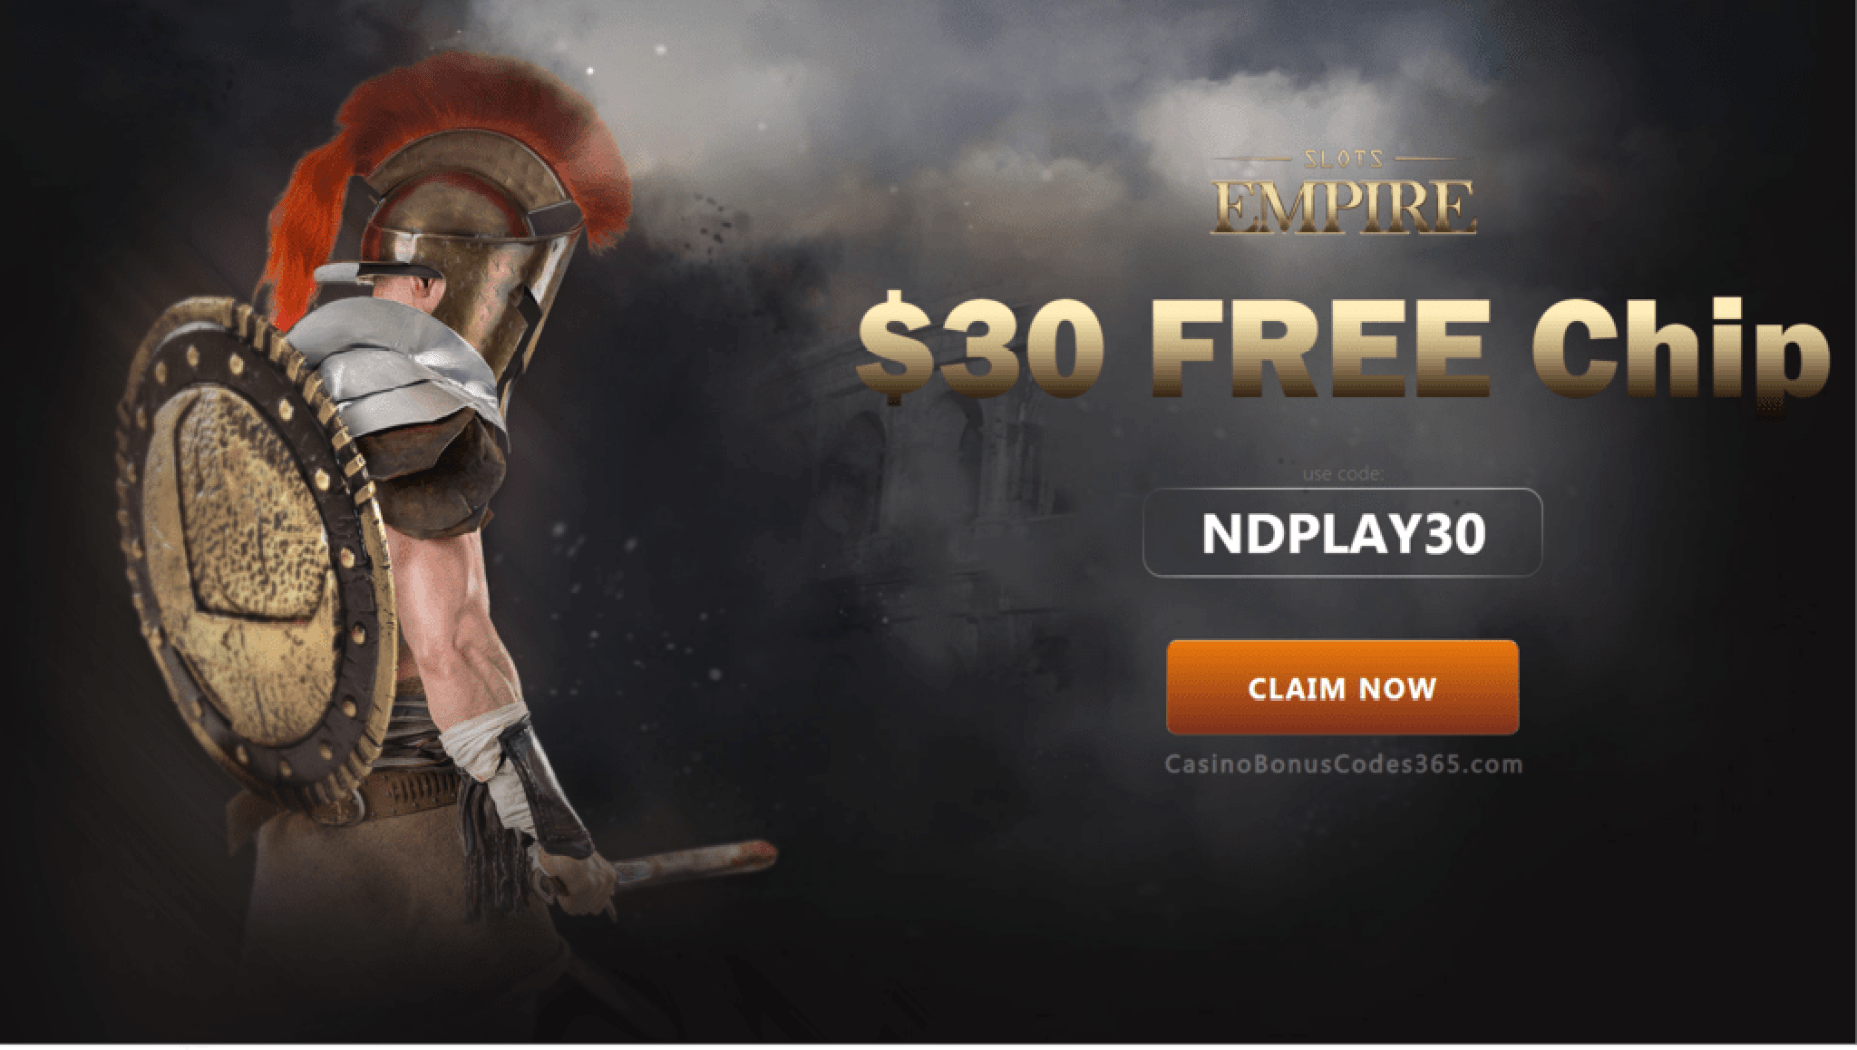 Slots Empire $30 FREE Chip Exclusive Deal